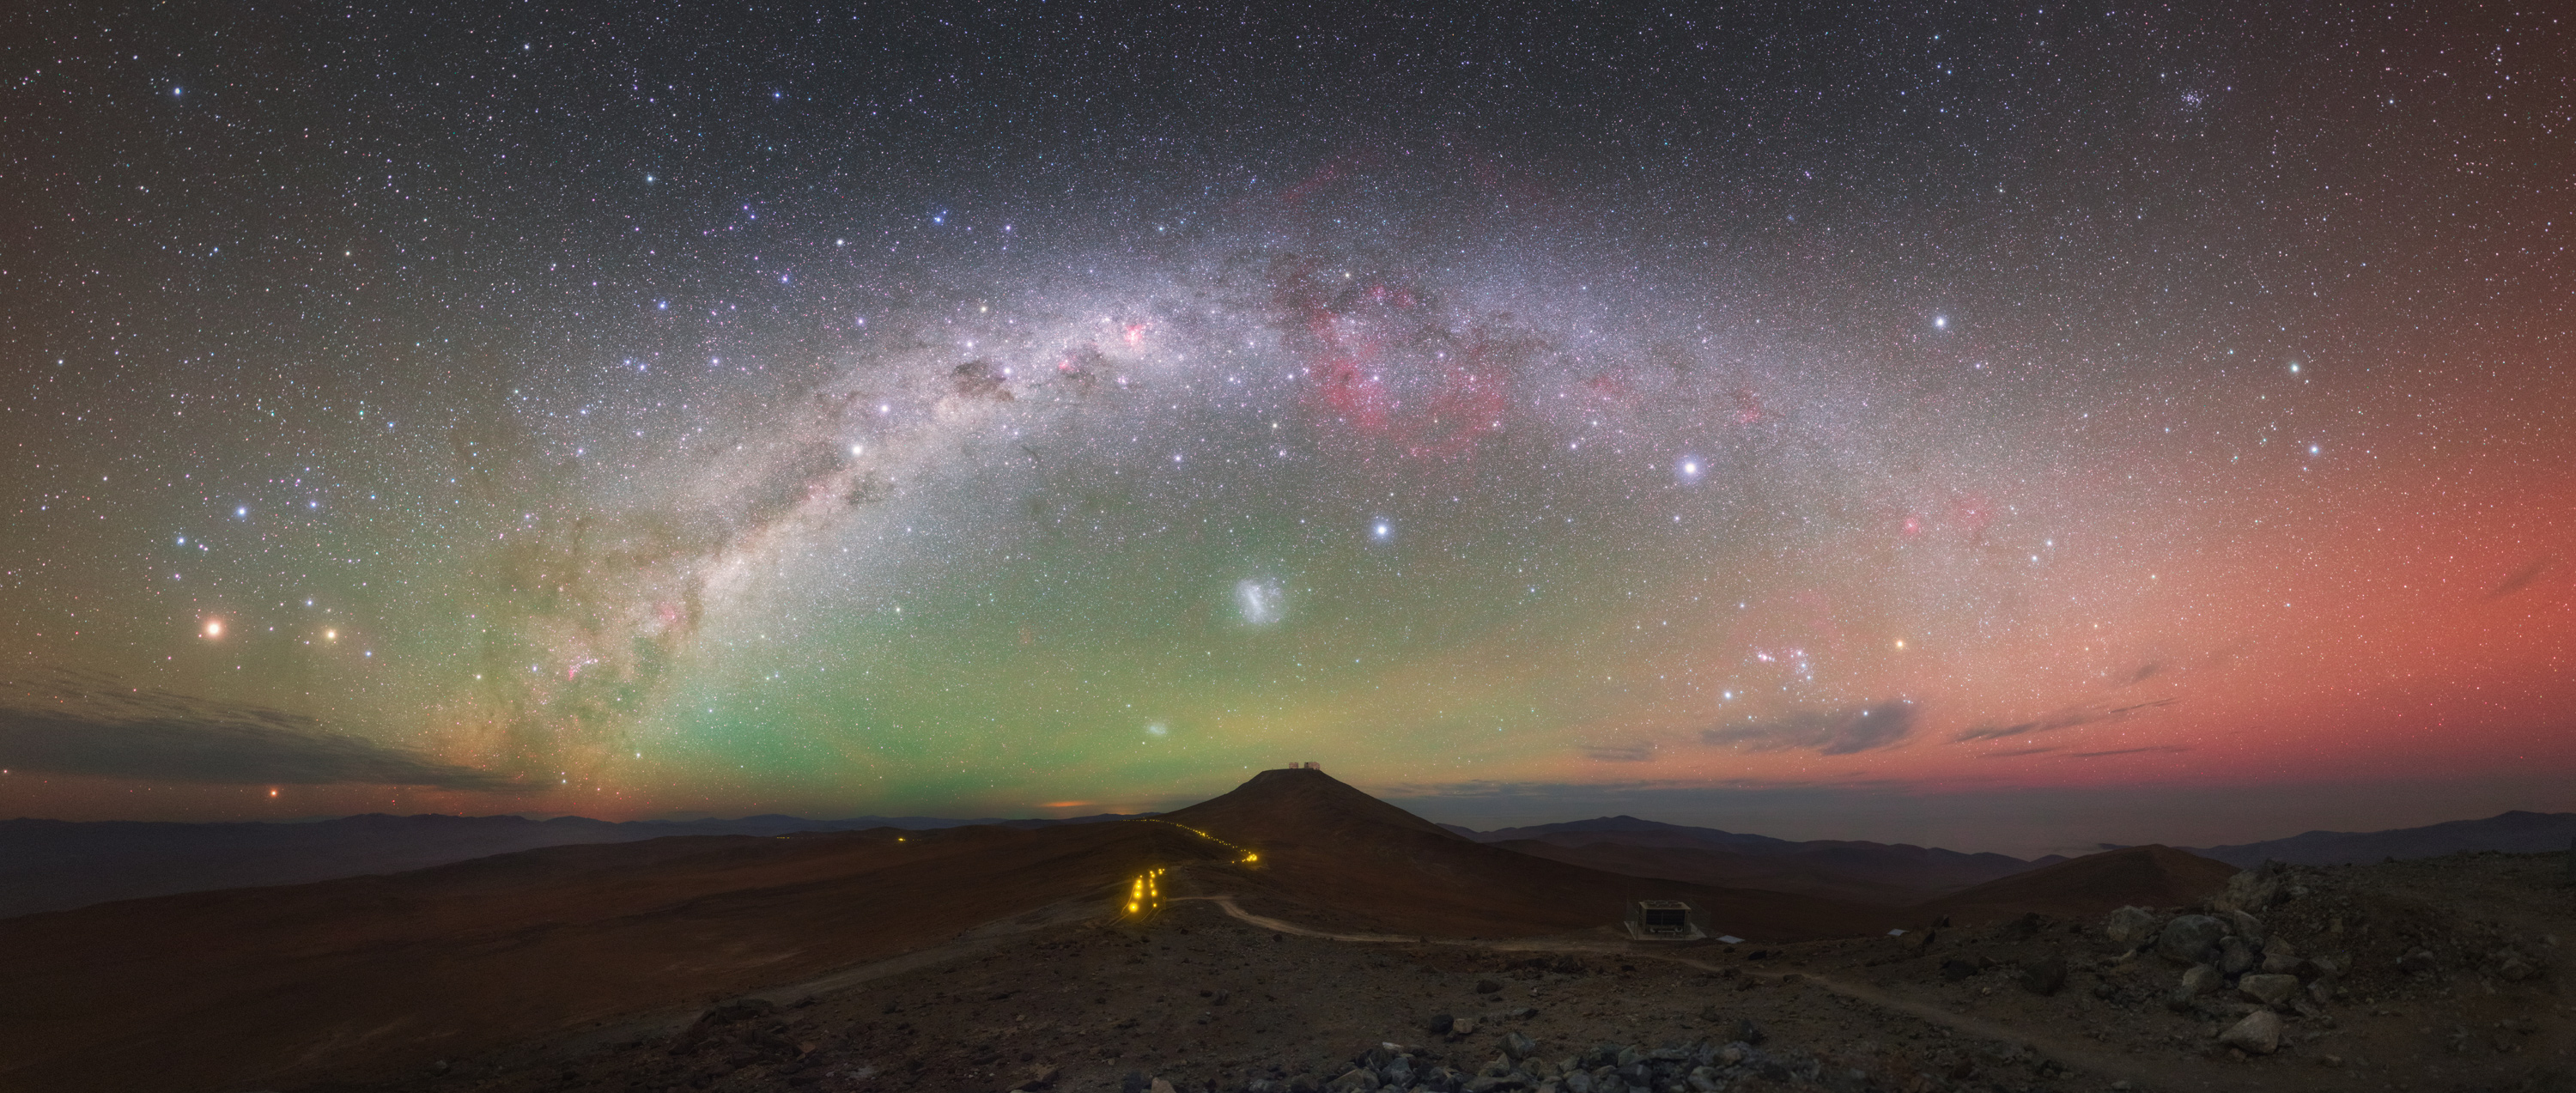 Spectacular Colors Paint Night Sky Over Chilean Desert (Photo)